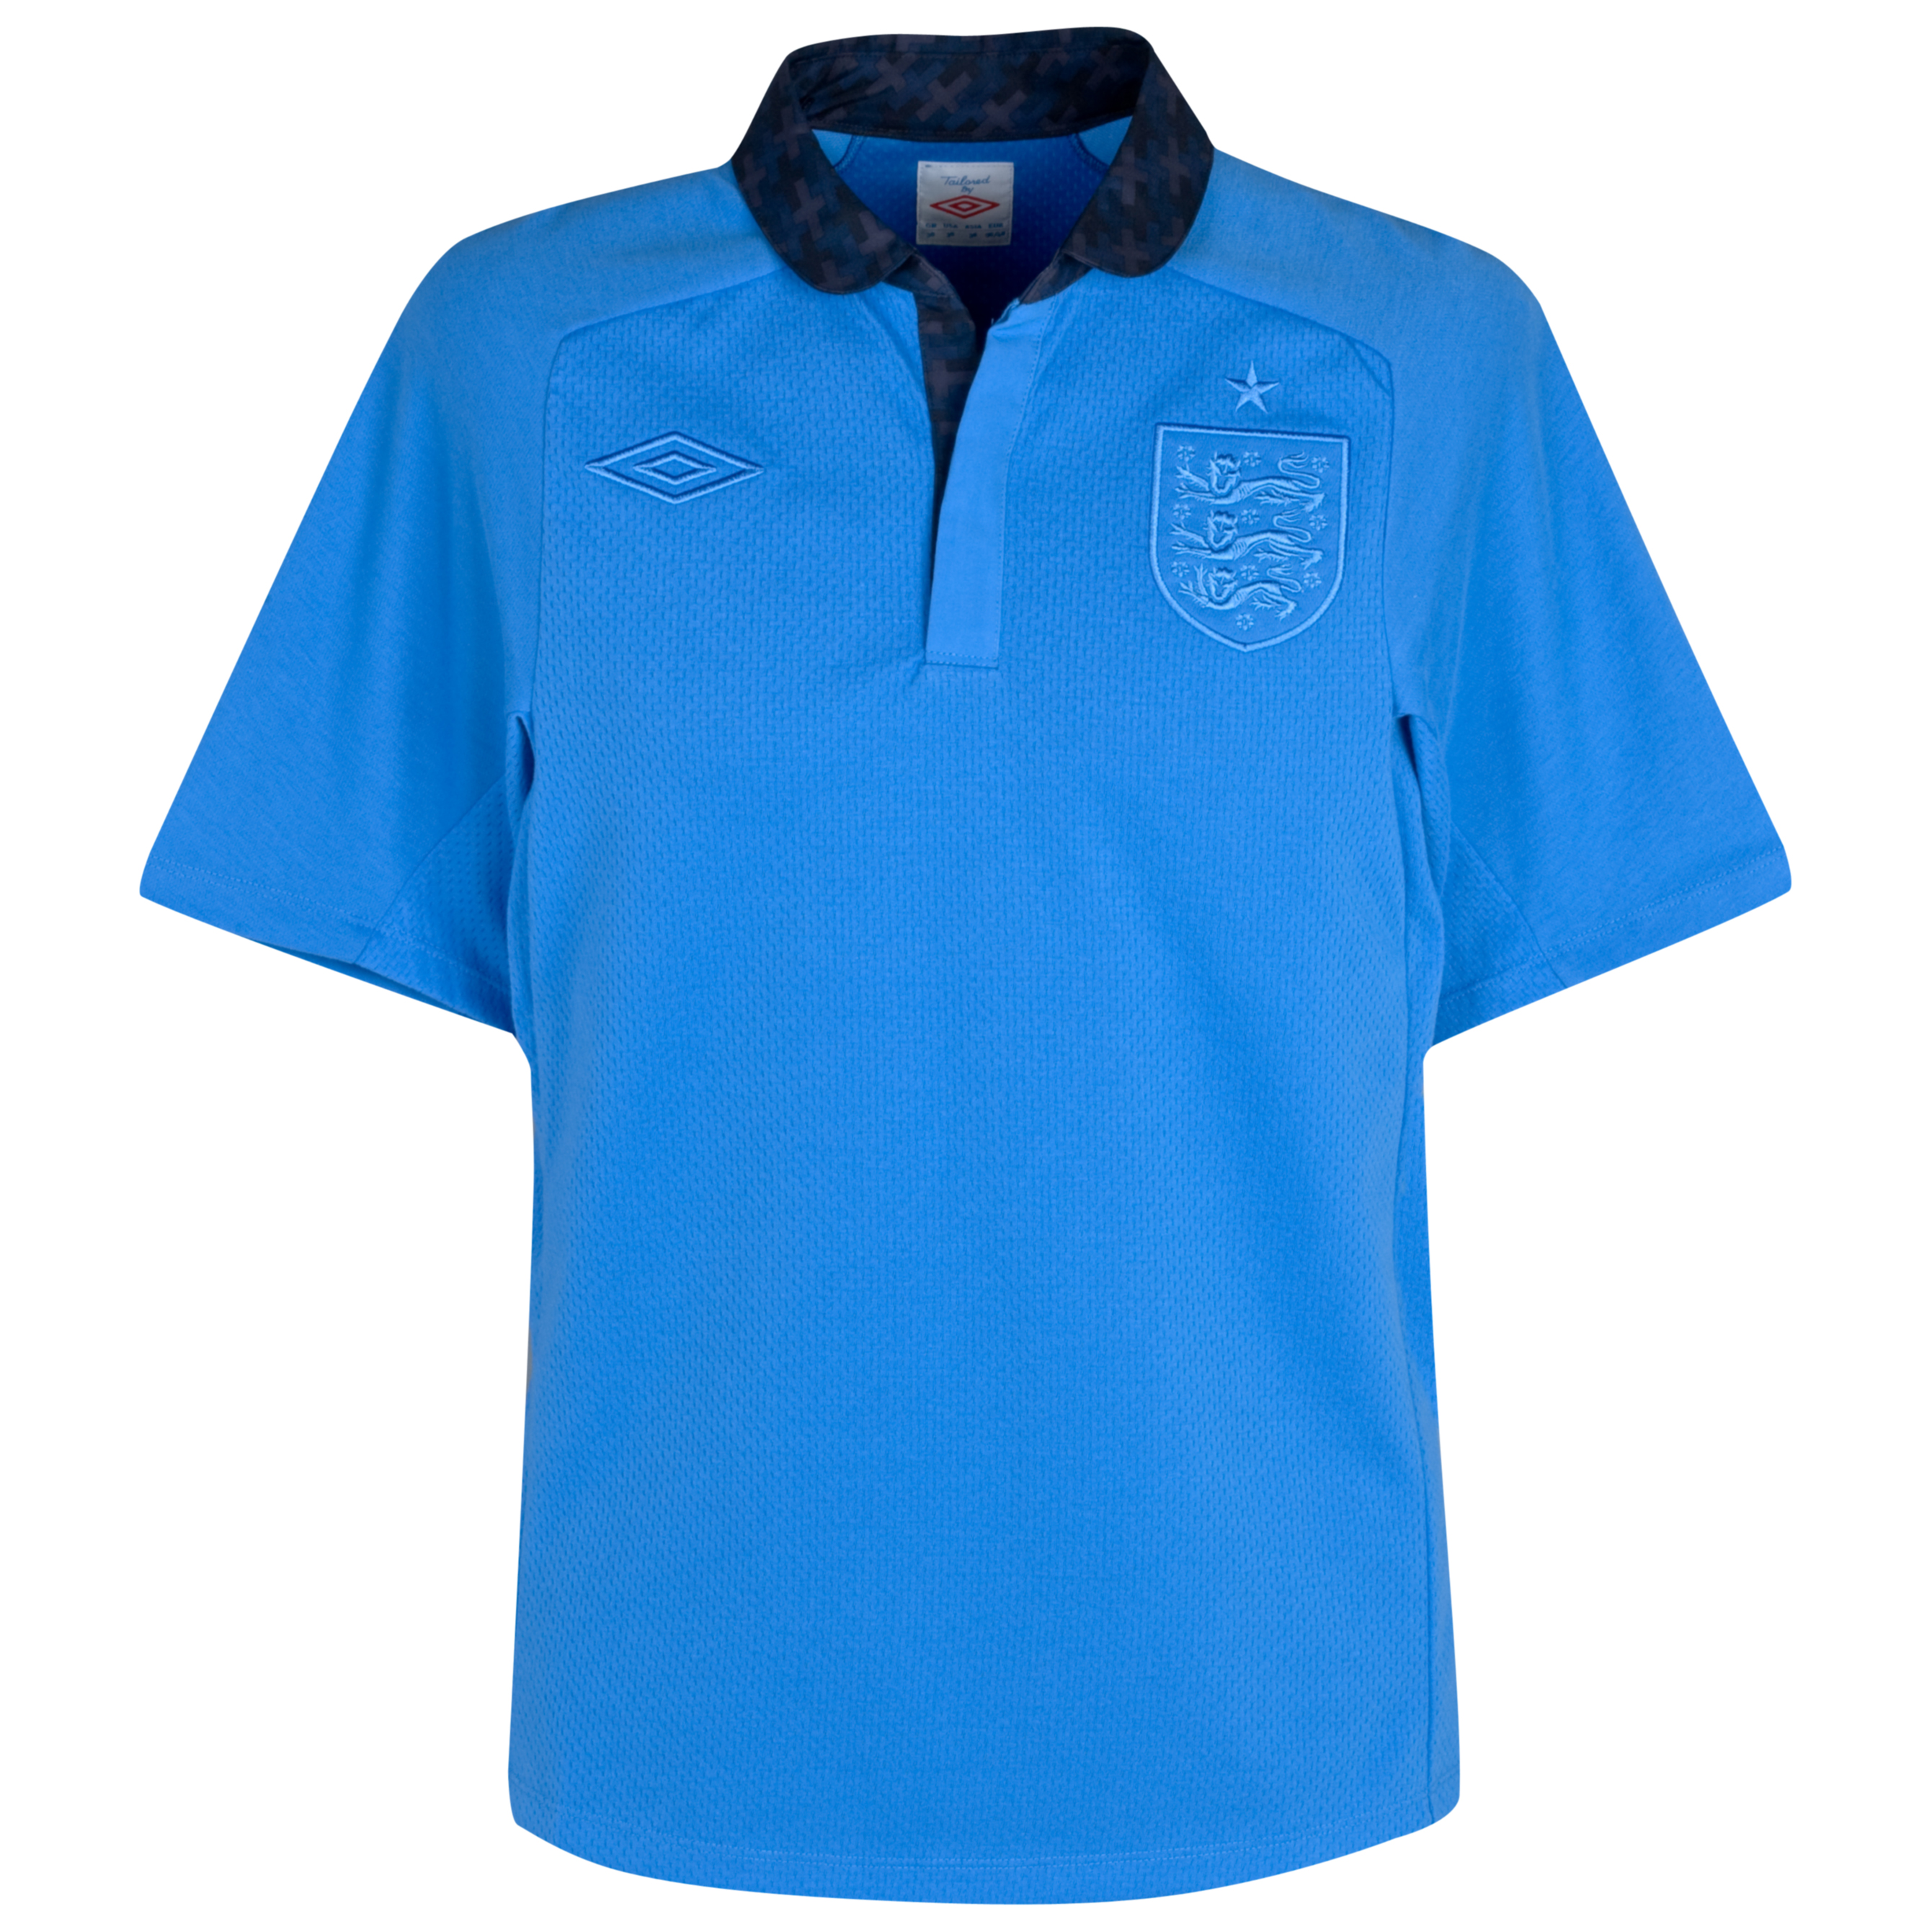 England Away 2011/12 Special Edition Shirt Regatta